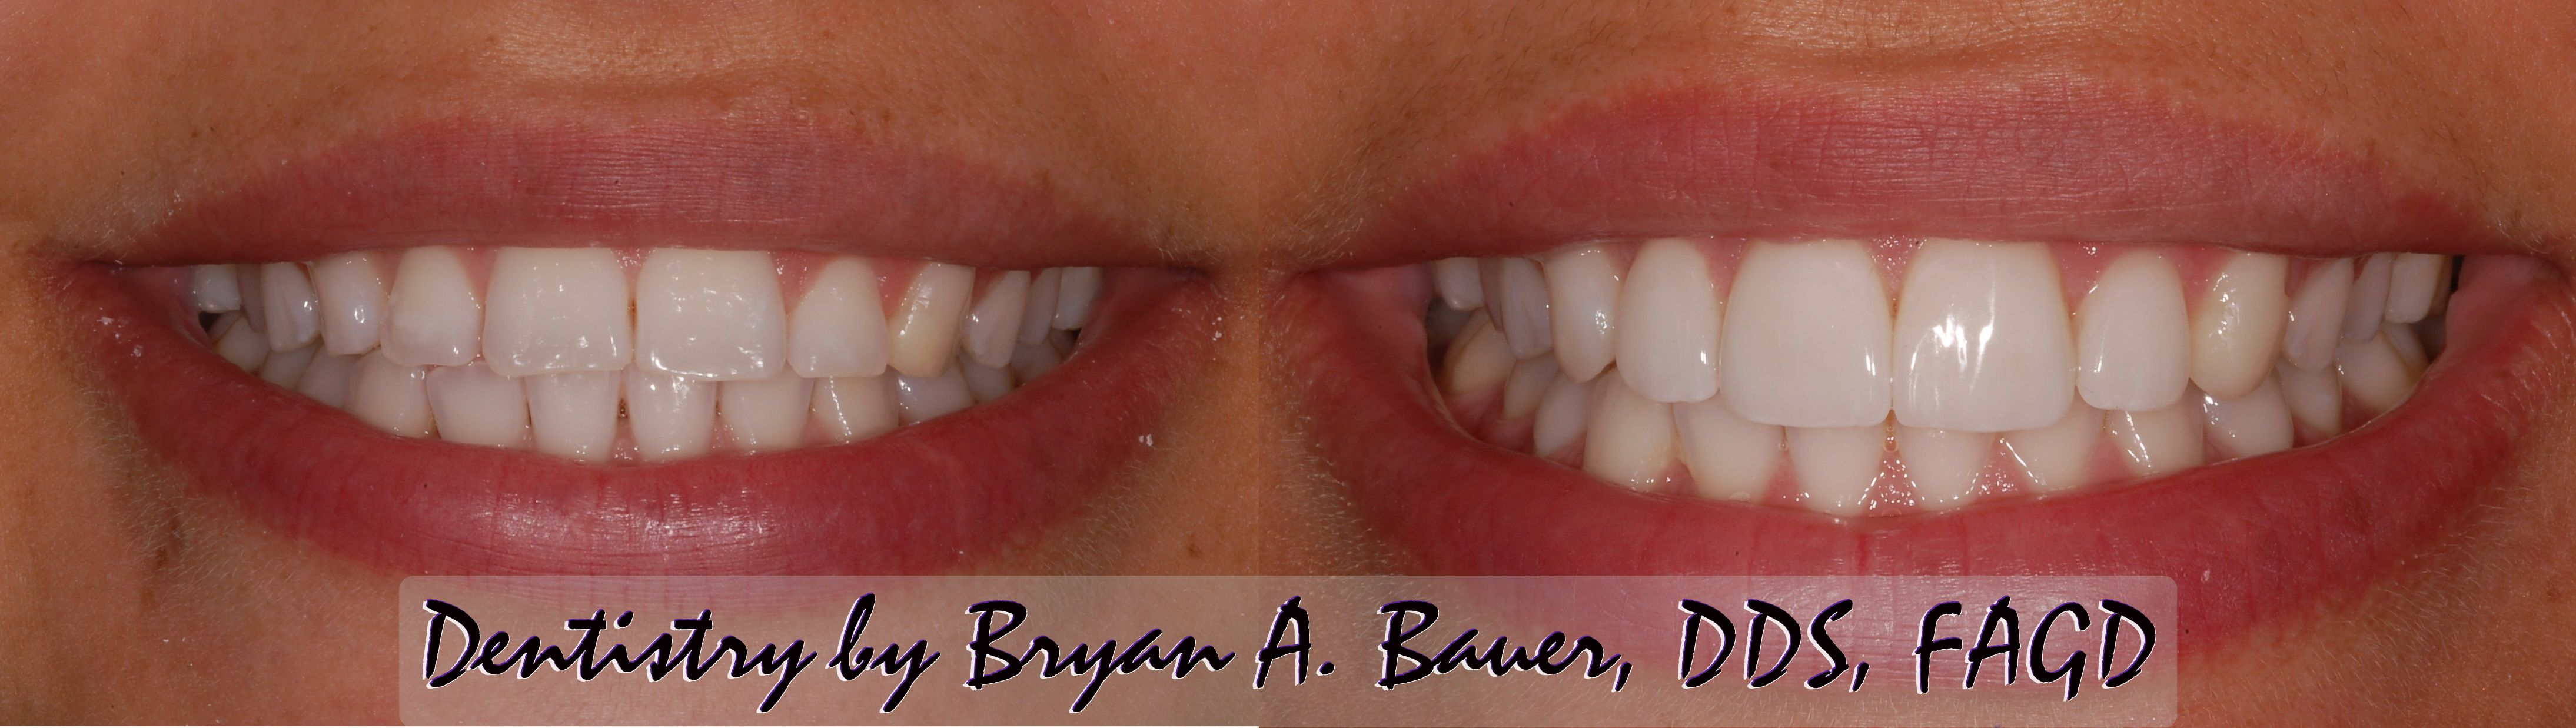 Dental veneers before and after - Wheaton, IL cosmetic dentist